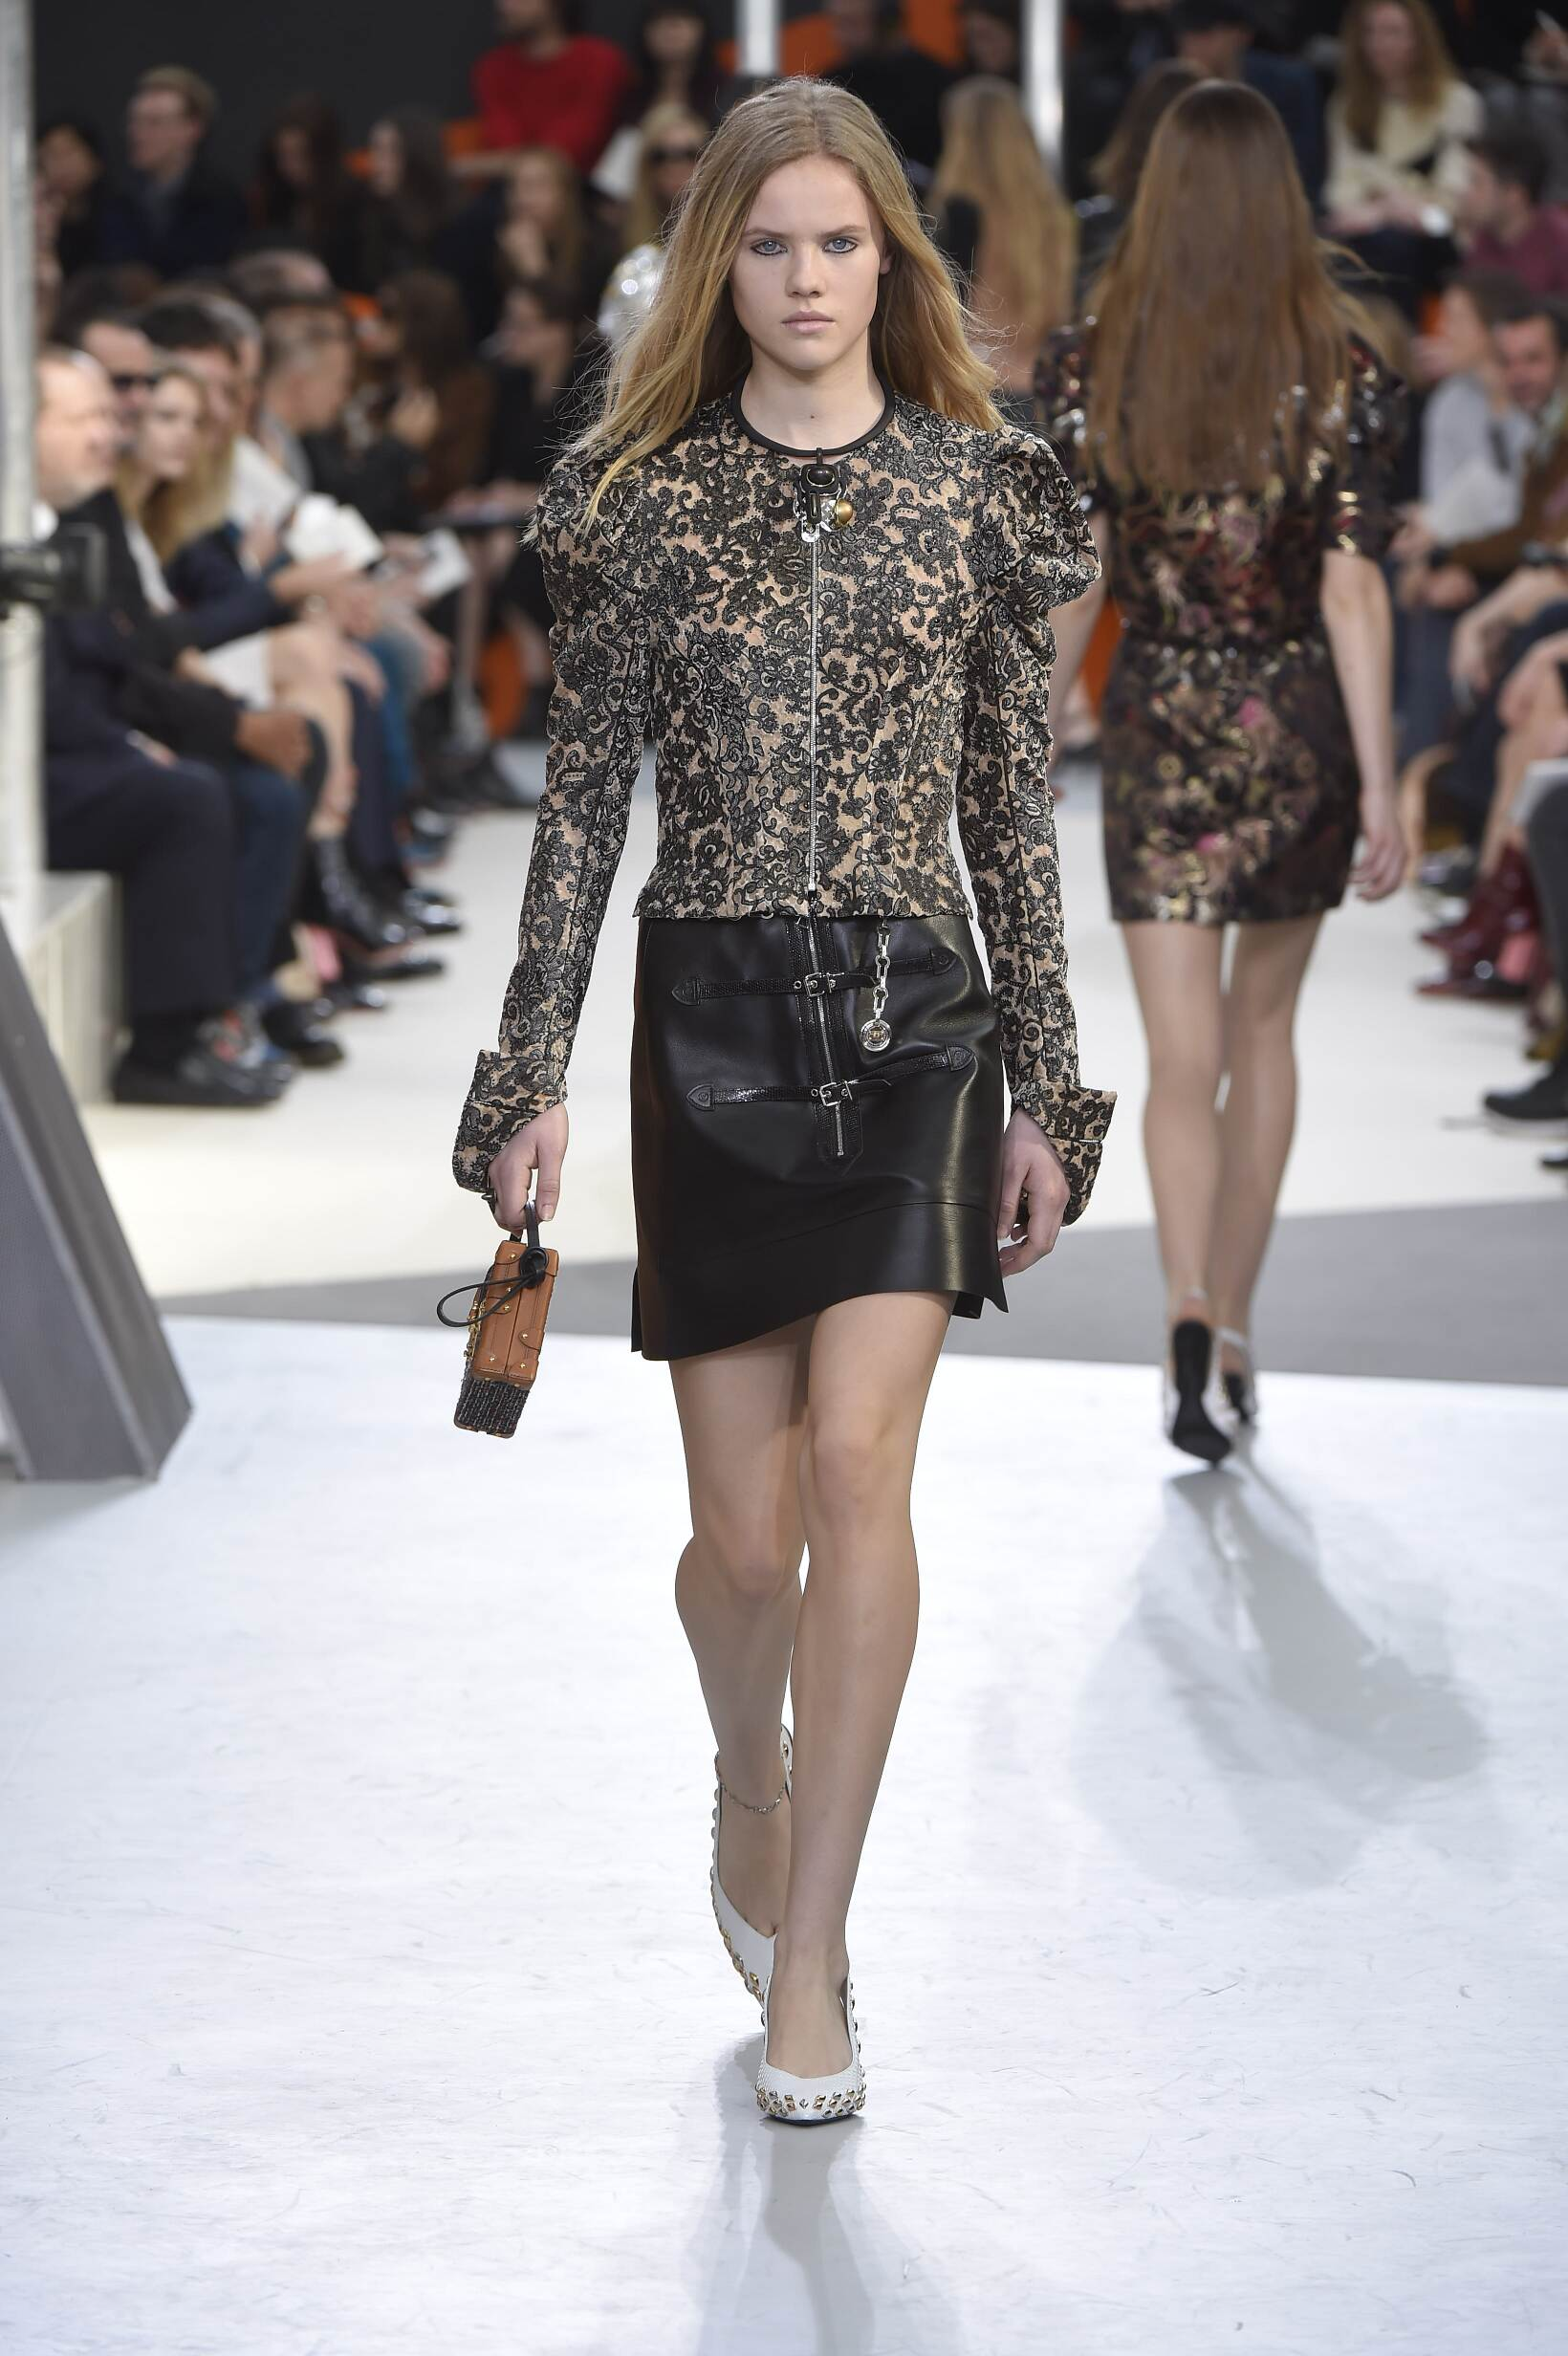 louis vuitton 2015. louis vuitton fall winter 2015 16 women\u0027s collection paris fashion week o